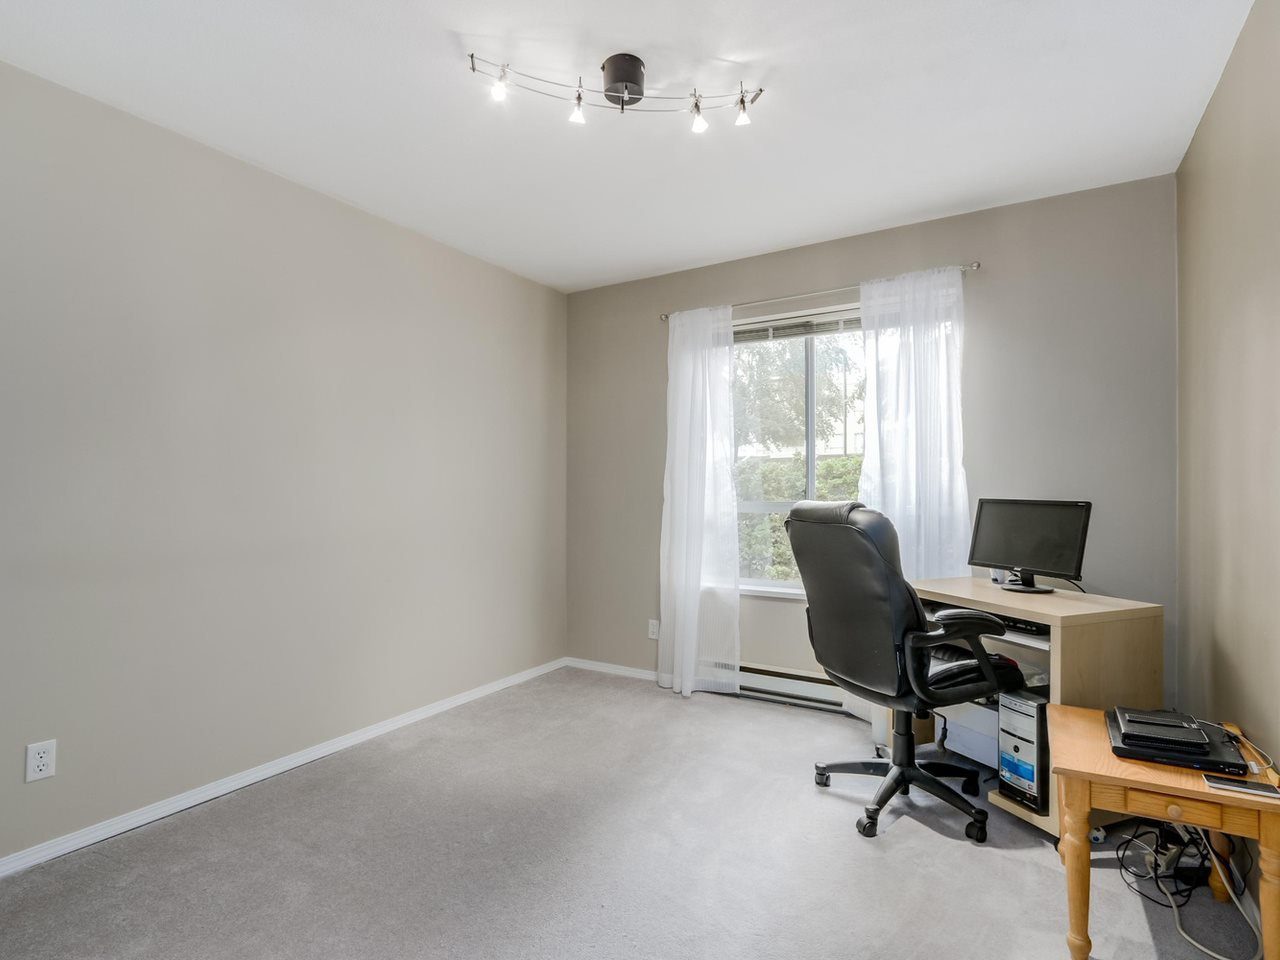 Photo 13: Photos: 107 515 WHITING Way in Coquitlam: Coquitlam West Condo for sale : MLS®# R2073119